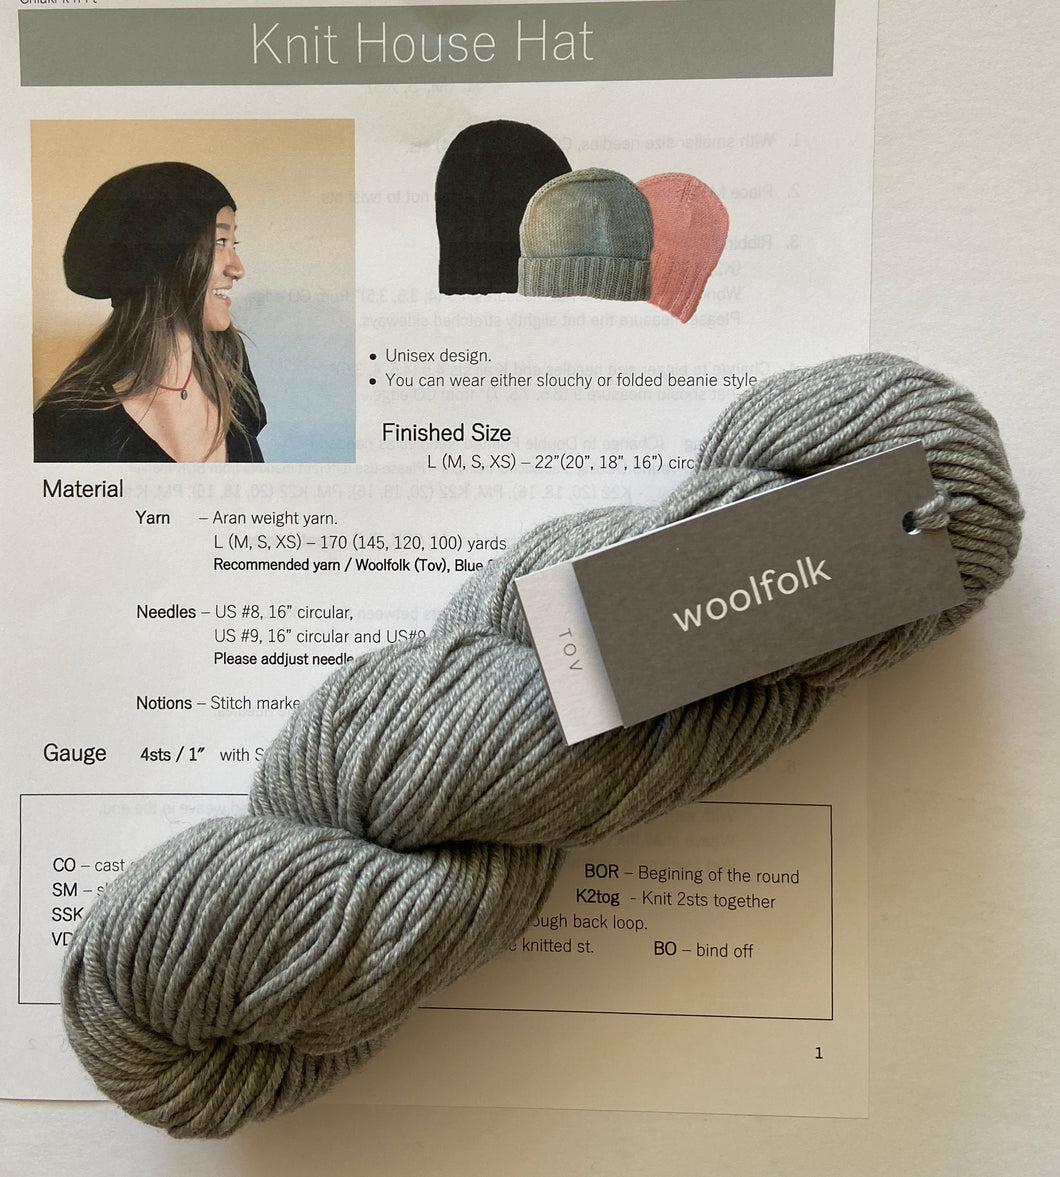 KIT: The Knit House Hat